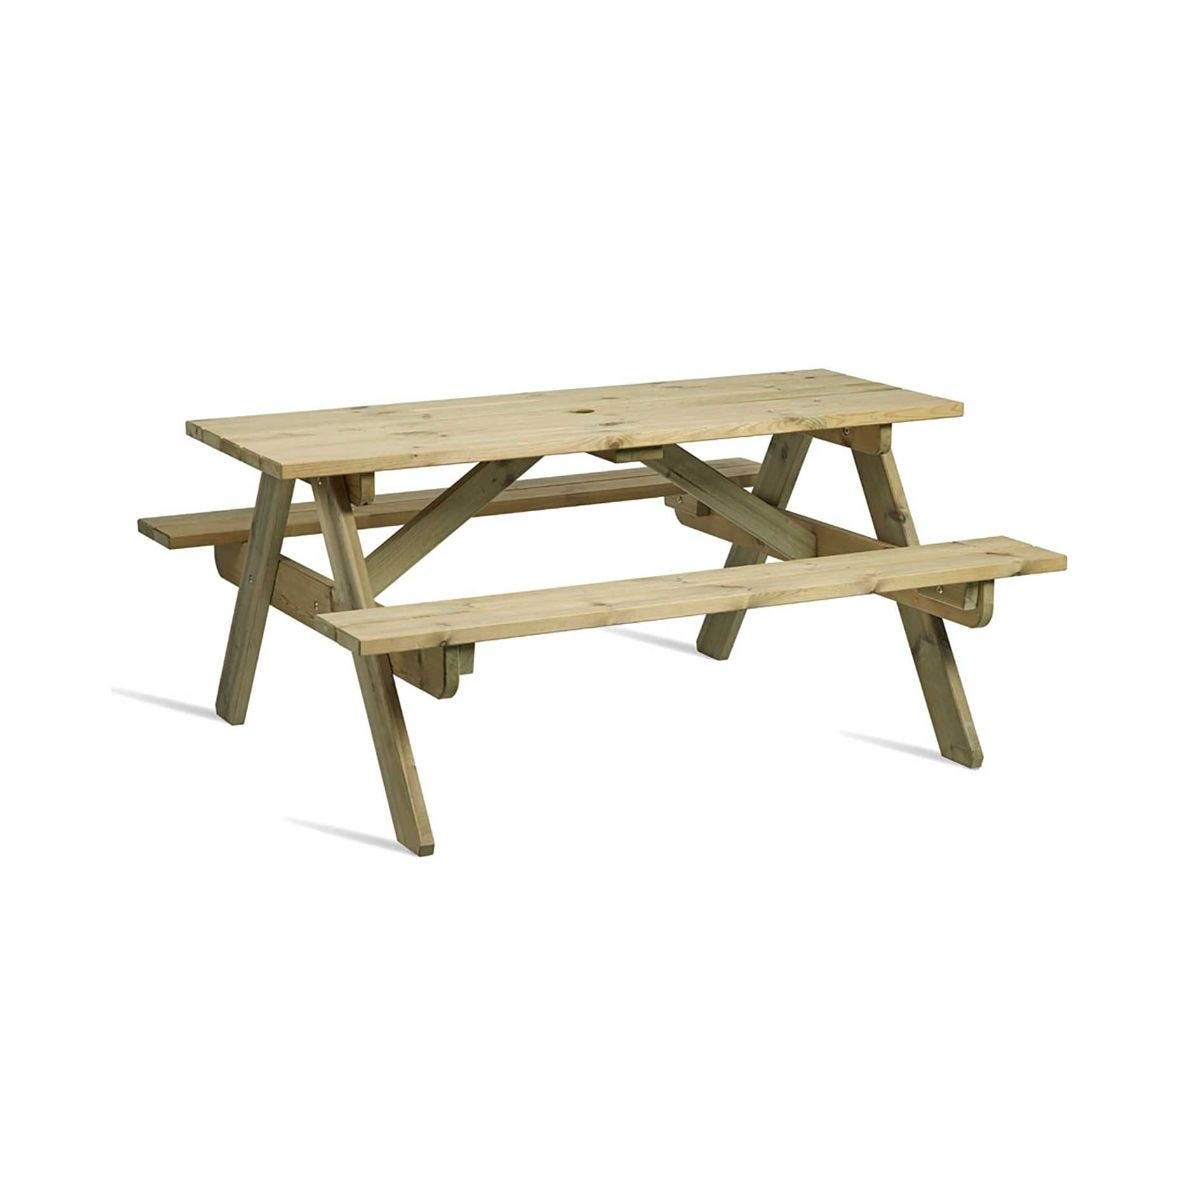 Hereford Picnic Table 8 Seater